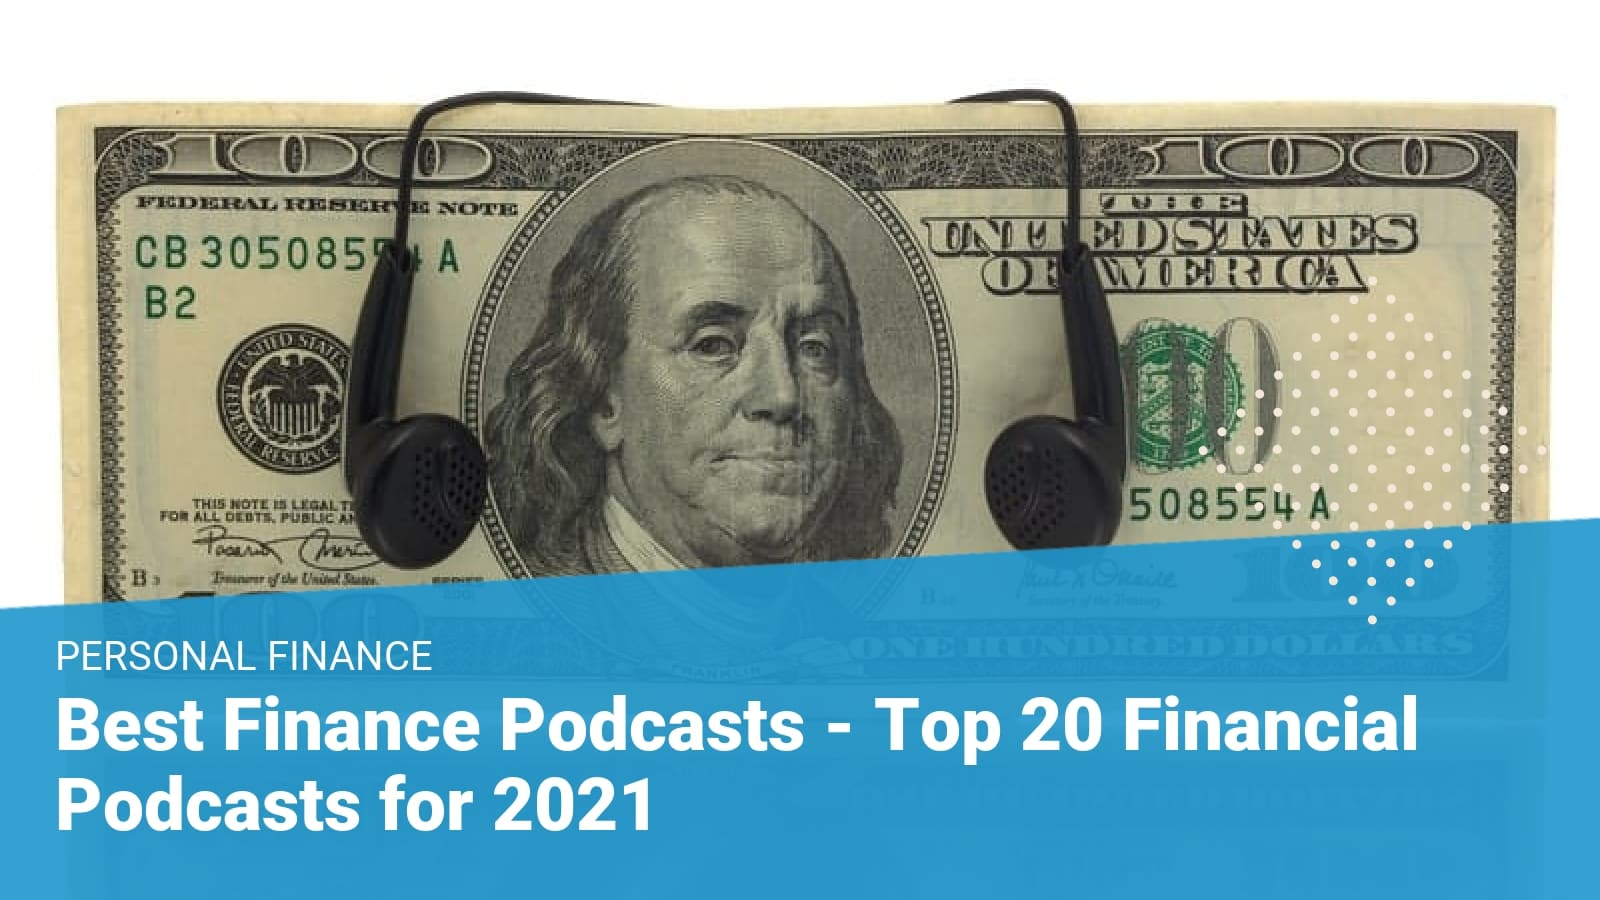 Finance Podcasts the best for 2020